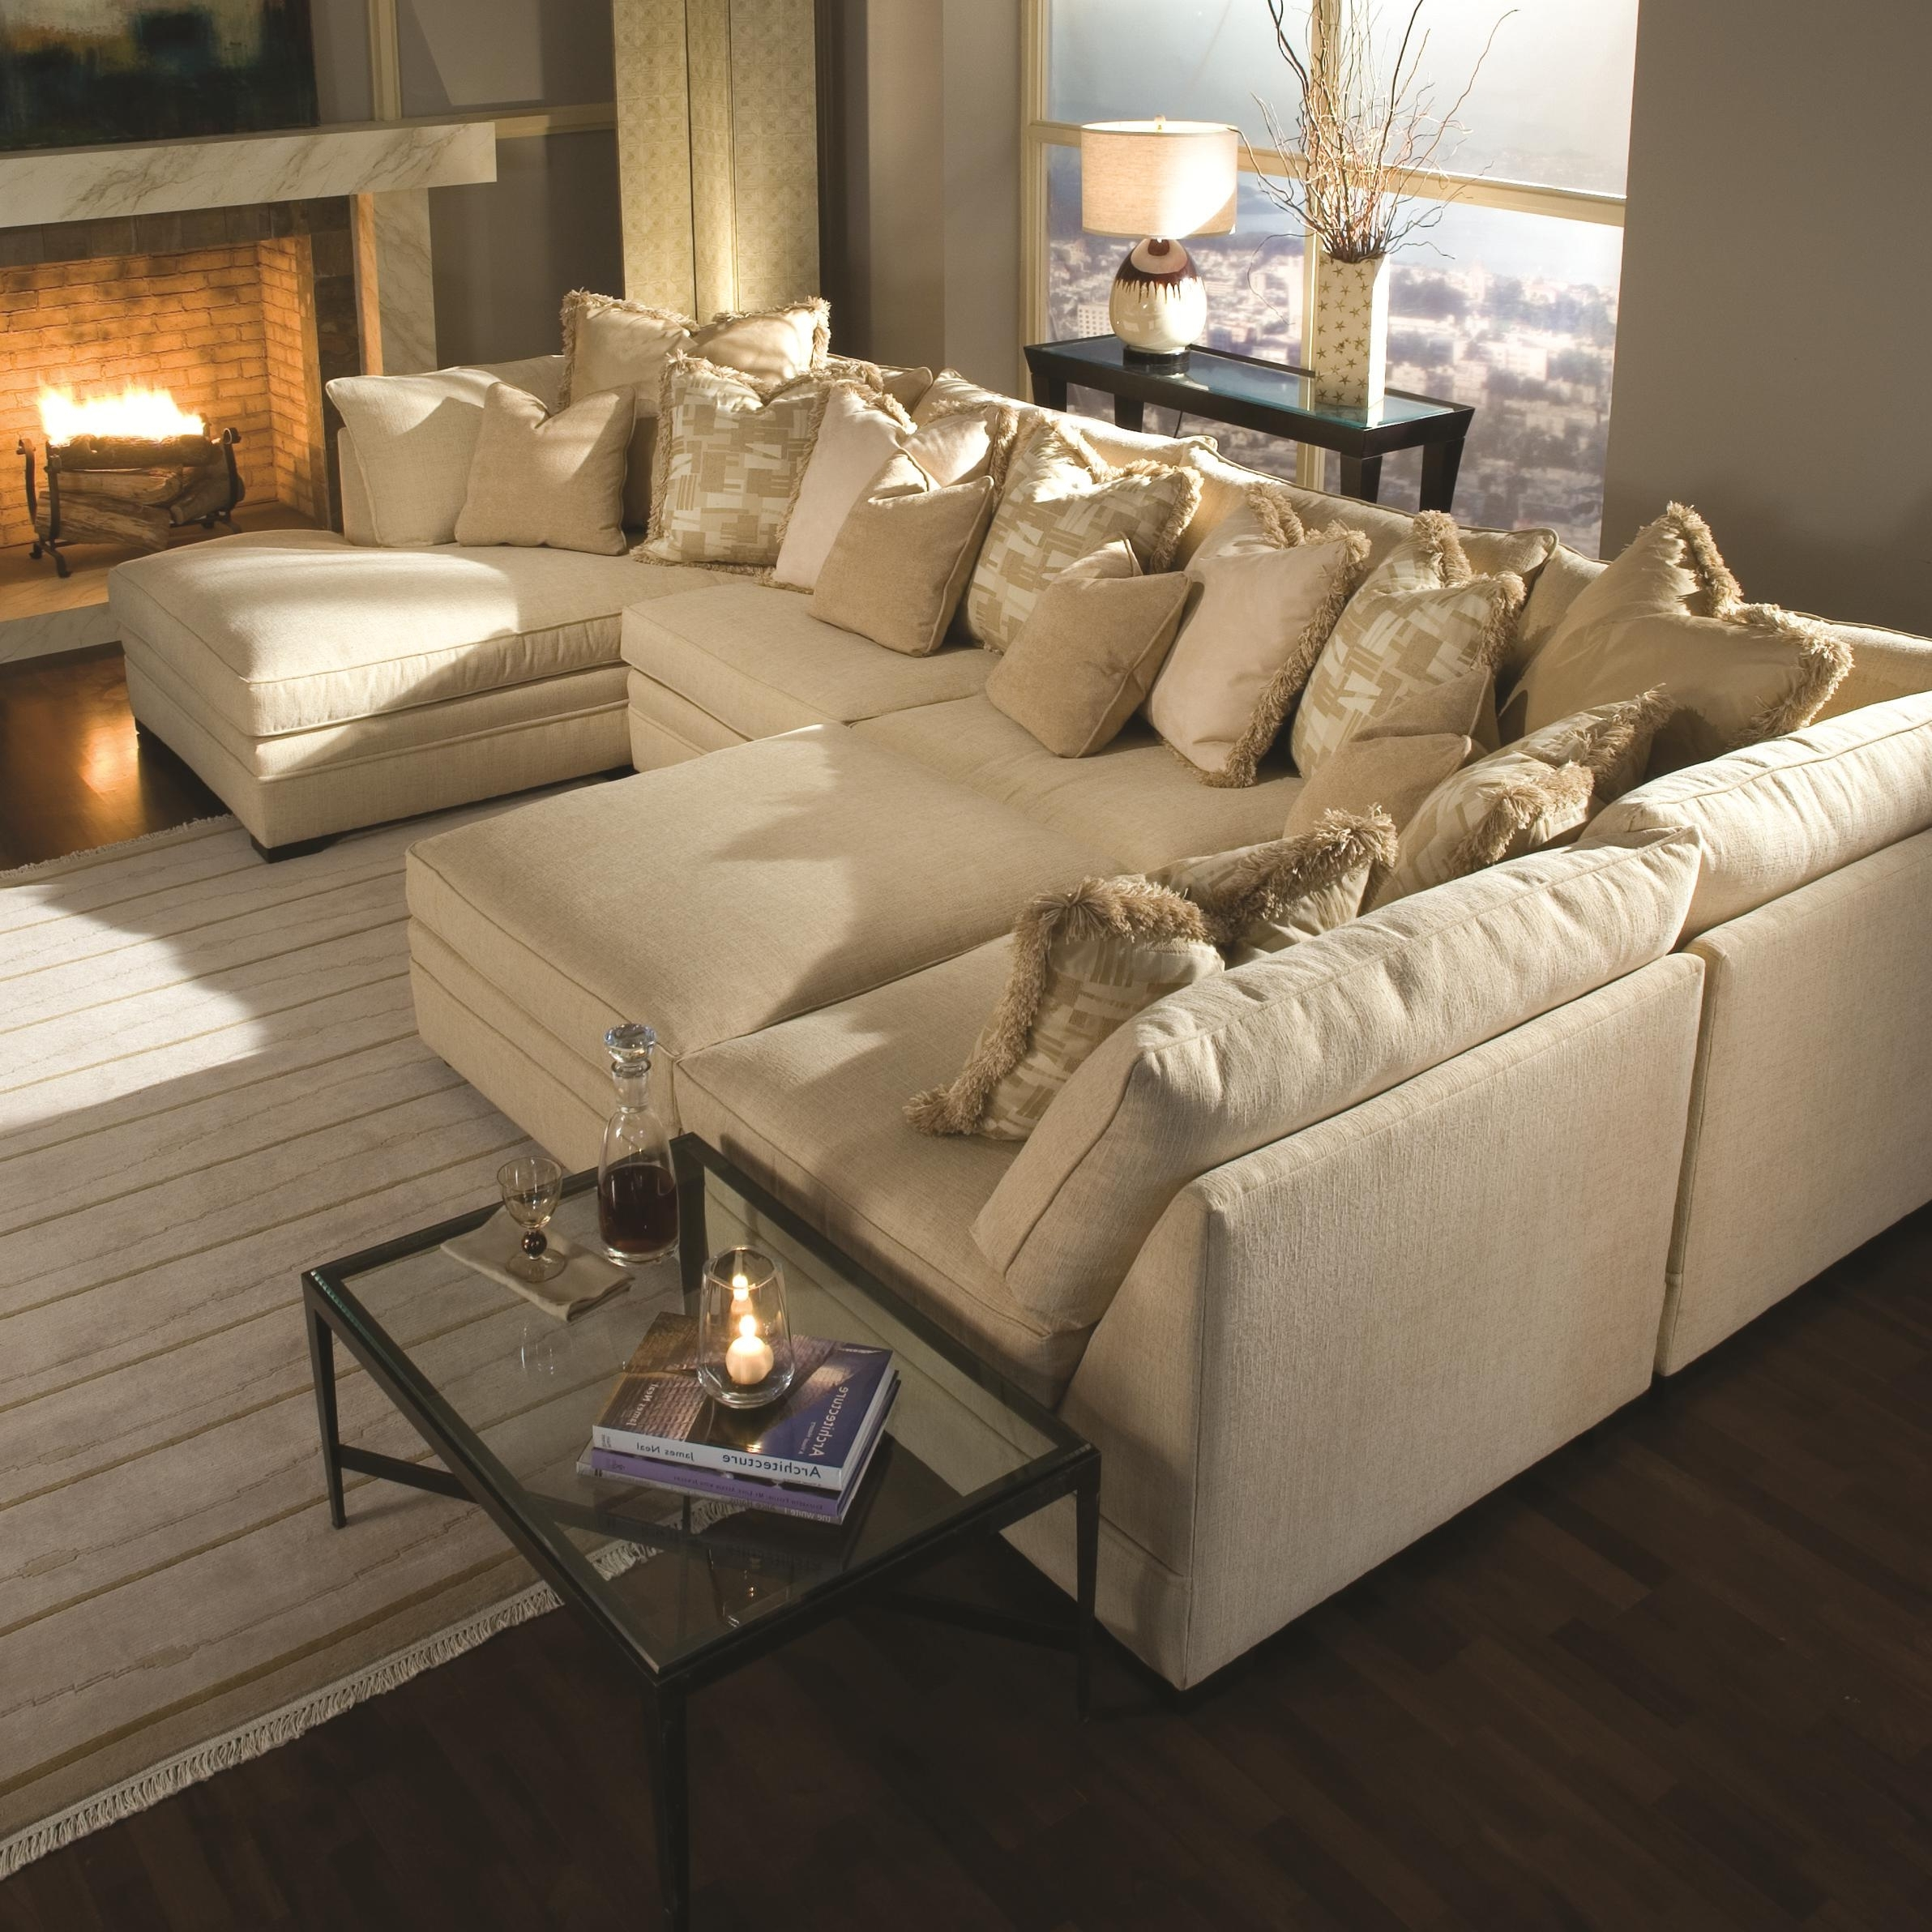 Trendy Dania Sectional Sofas Pertaining To Huntington House 7100 Contemporary U Shape Sectional Sofa With (View 7 of 15)